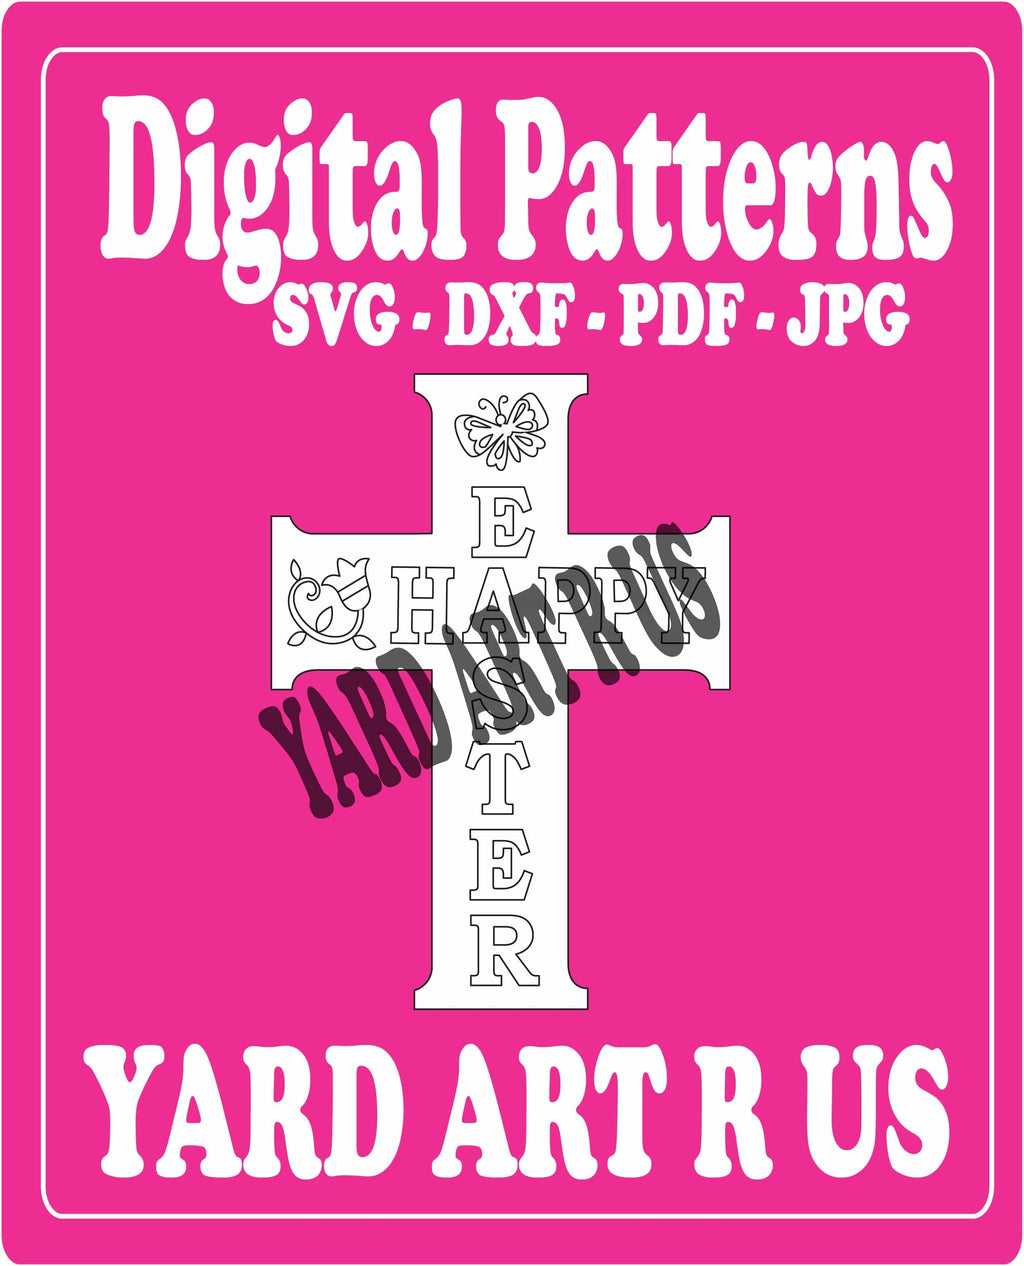 Happy easter cross digital pattern - SVG, DXF, PDF, and JPG file options